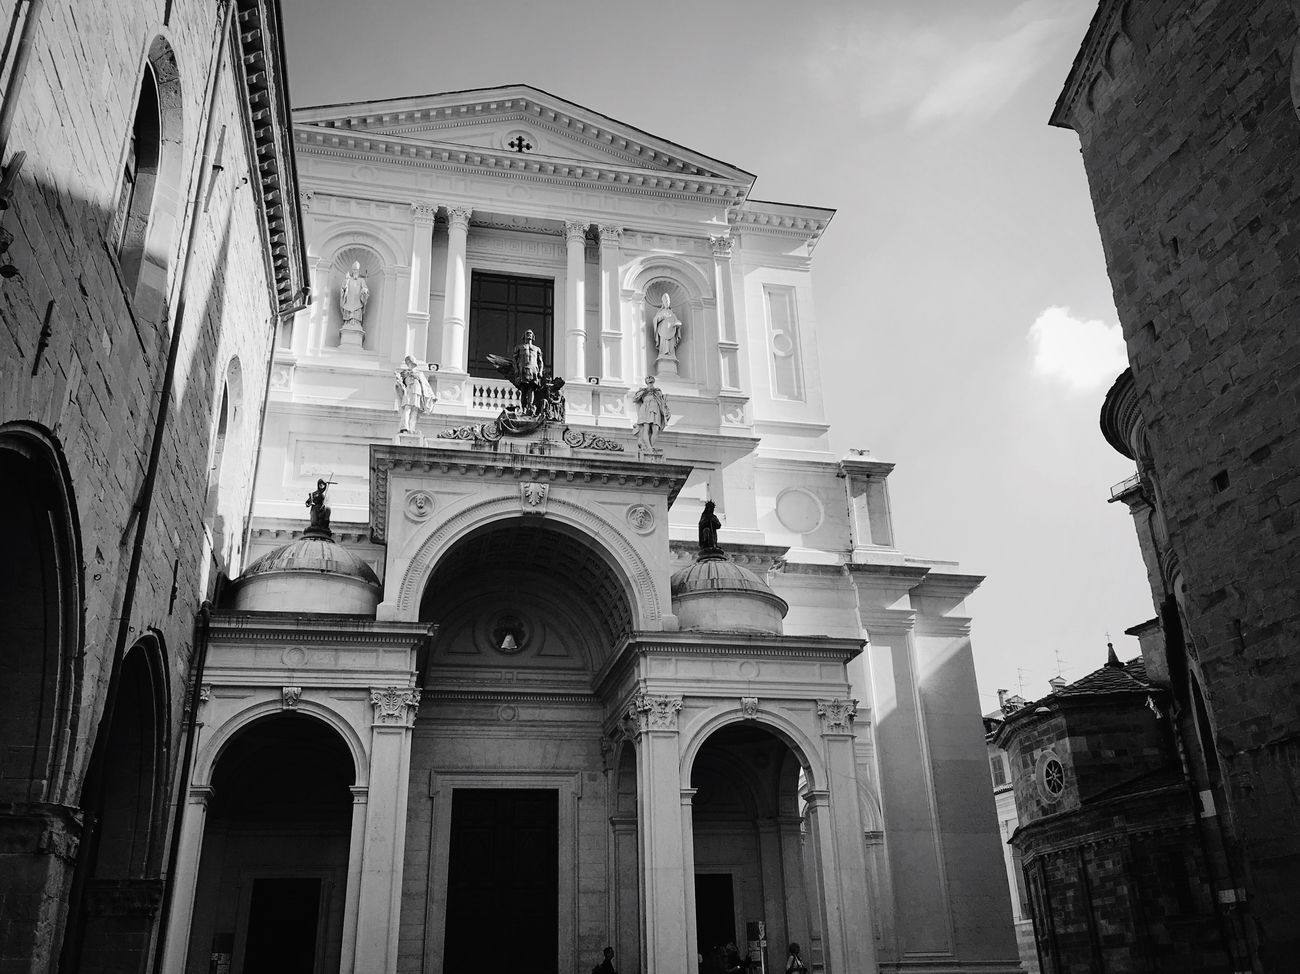 Monochrome Photography Architecture Building Exterior Religion Spirituality Spiritual History Light And Shadow No People Italy Italia Bergamo Old Buildings Church Travel Traveling Travel Destinations Travel Photography Blackandwhite Streetphoto_bw Black And White Black & White Streetphotography Street Photography Art